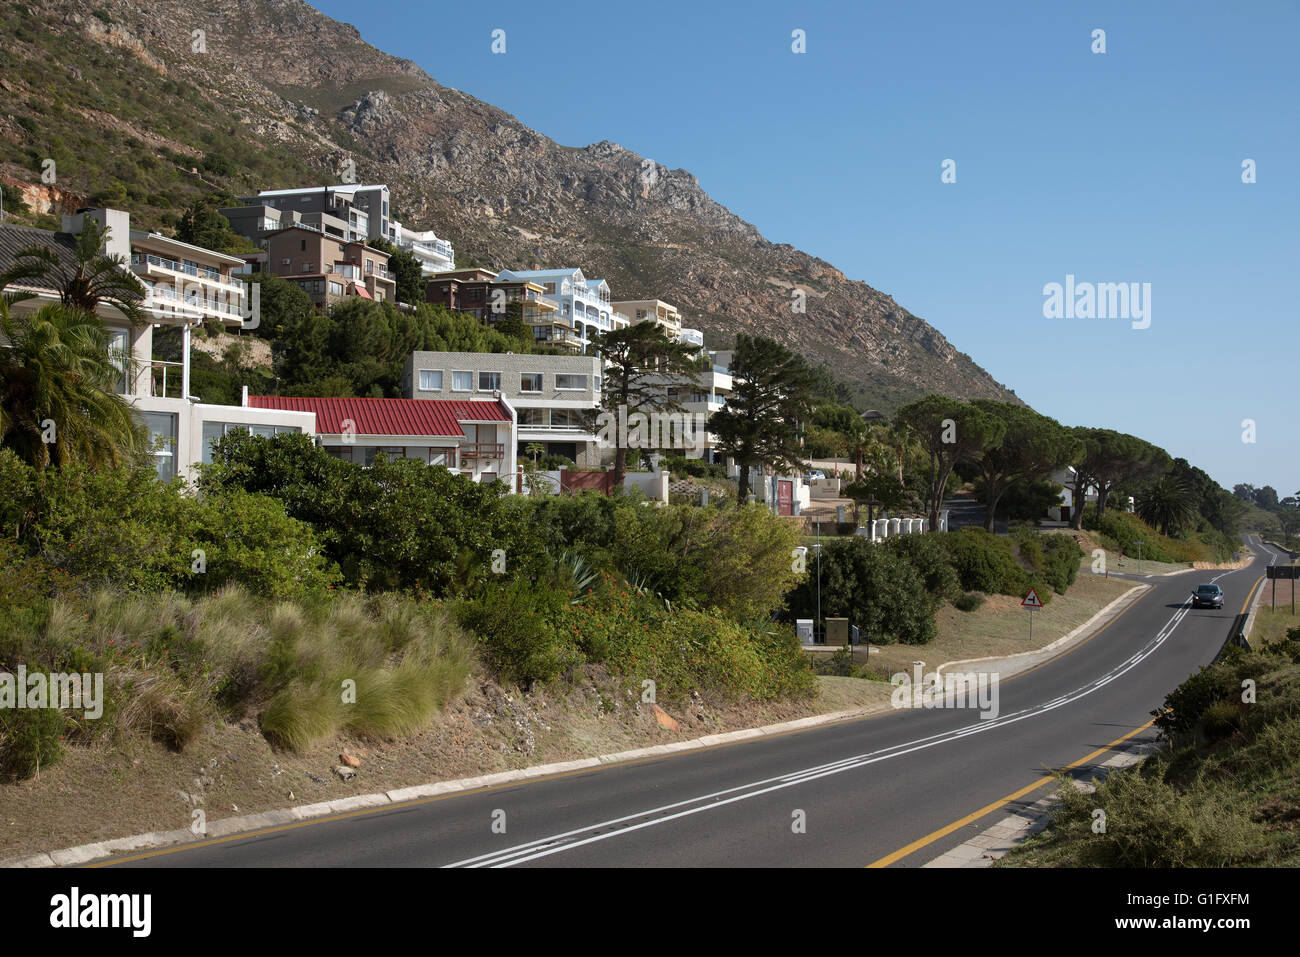 GORDON'S BAY WESTERN CAPE SOUTH AFRICA.  Upmarket housing below the Hottentot Mountains at Gordon's Bay - Stock Image